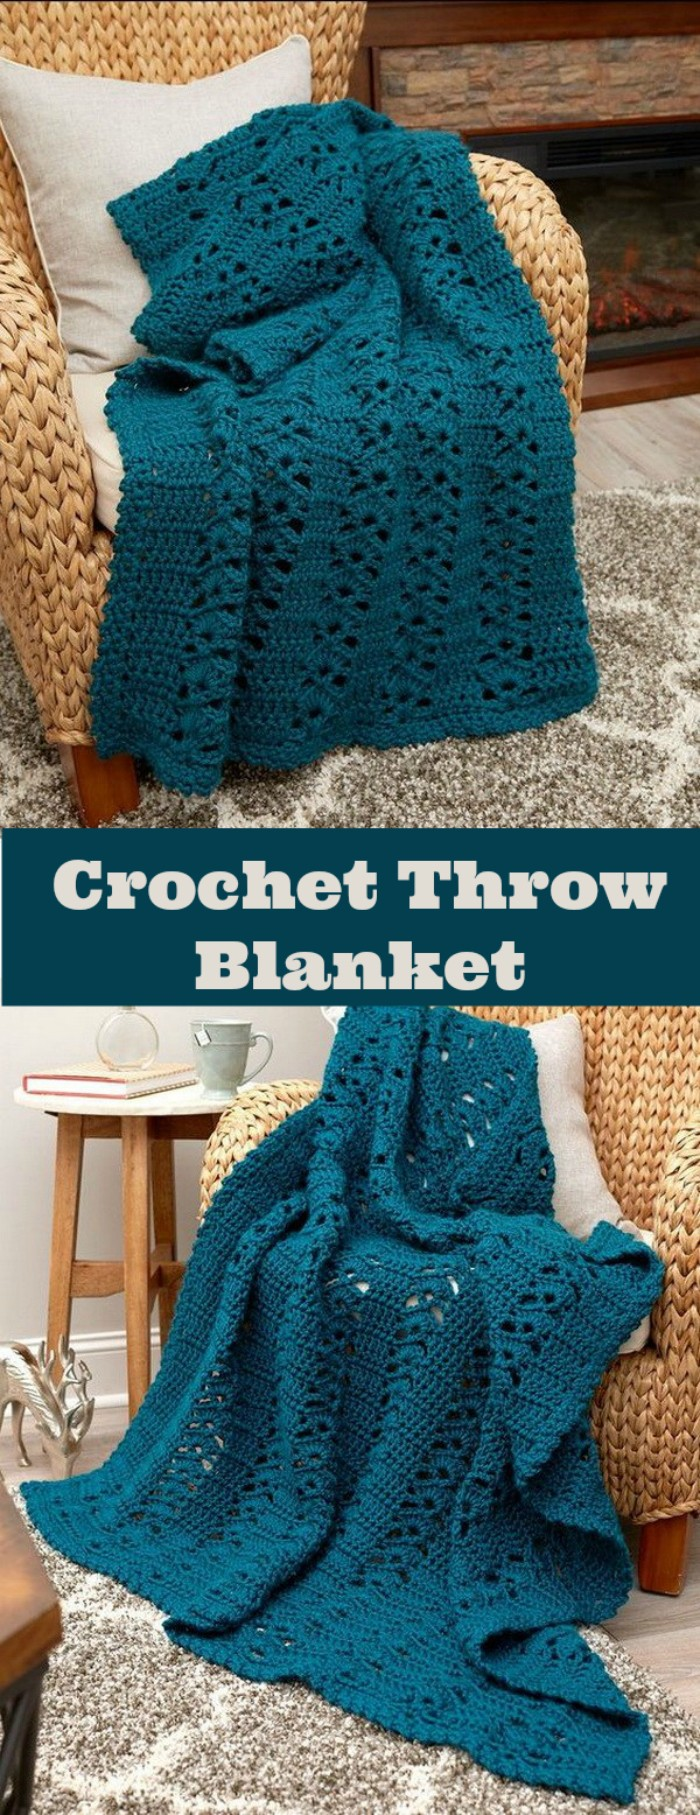 Charming Crochet Throw Blanket -All of these free crochet blanket patterns are so much beautiful and really easy. Most of them are so much less time-consuming and even they can be completed in less than one week. #Blankets #crochetblanket #crochetblanketpatterns #freecrochetblanketpattern #freecrochetblanket